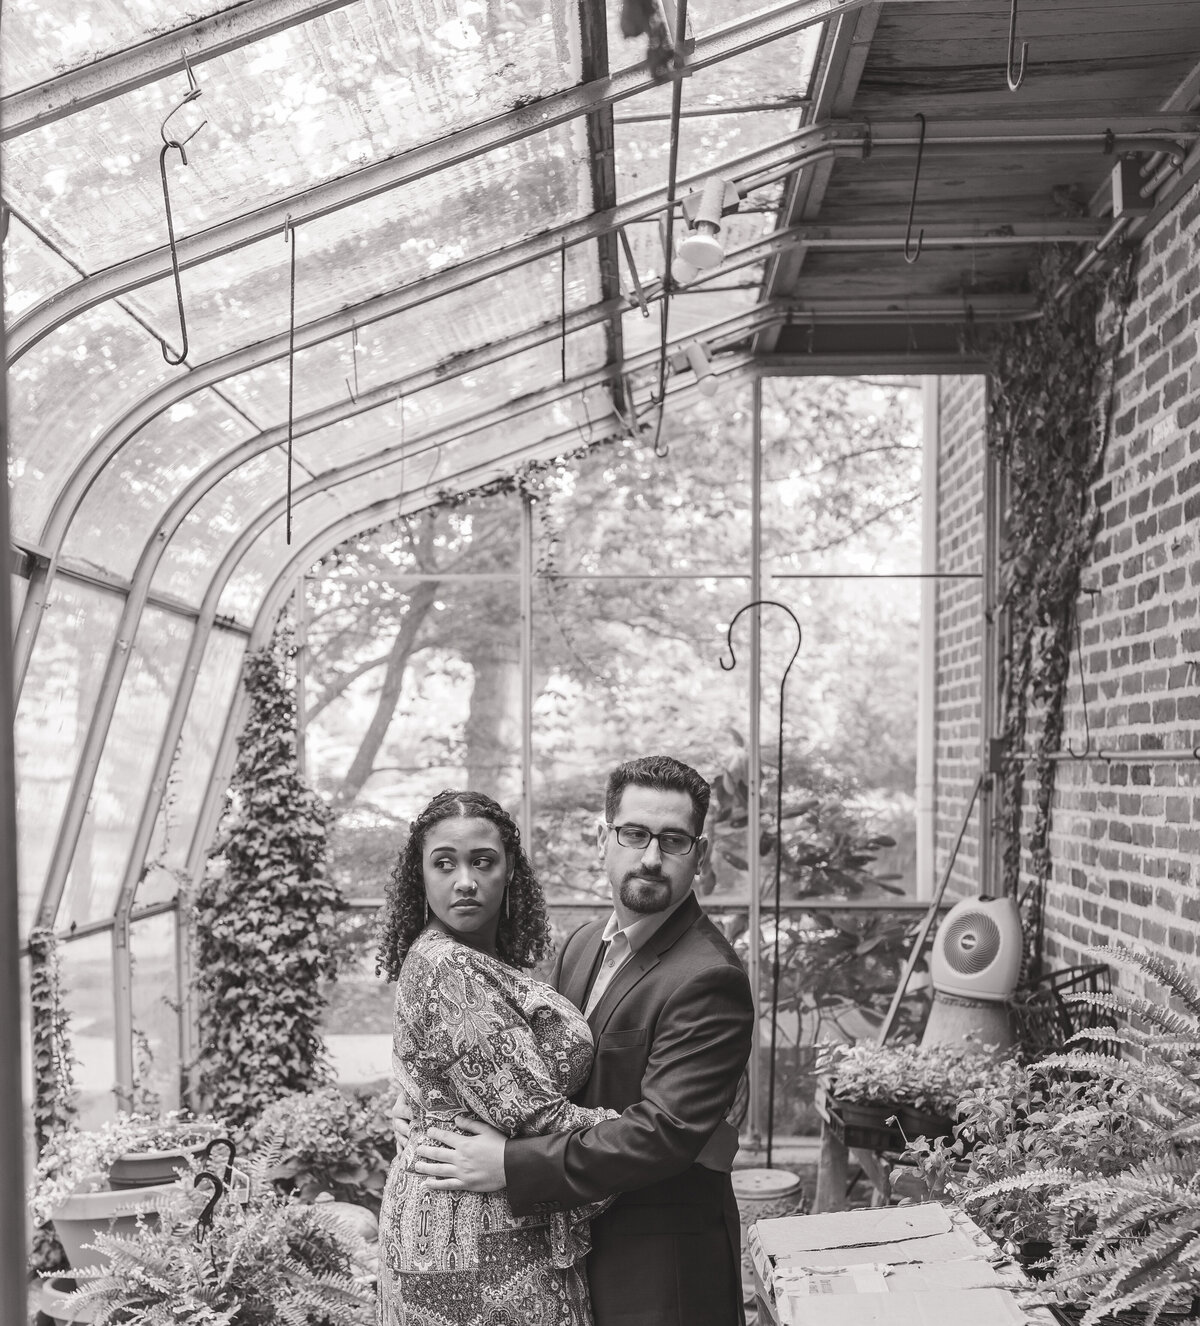 engaged couple standing in greenhouse smithville village, smithville, NJ